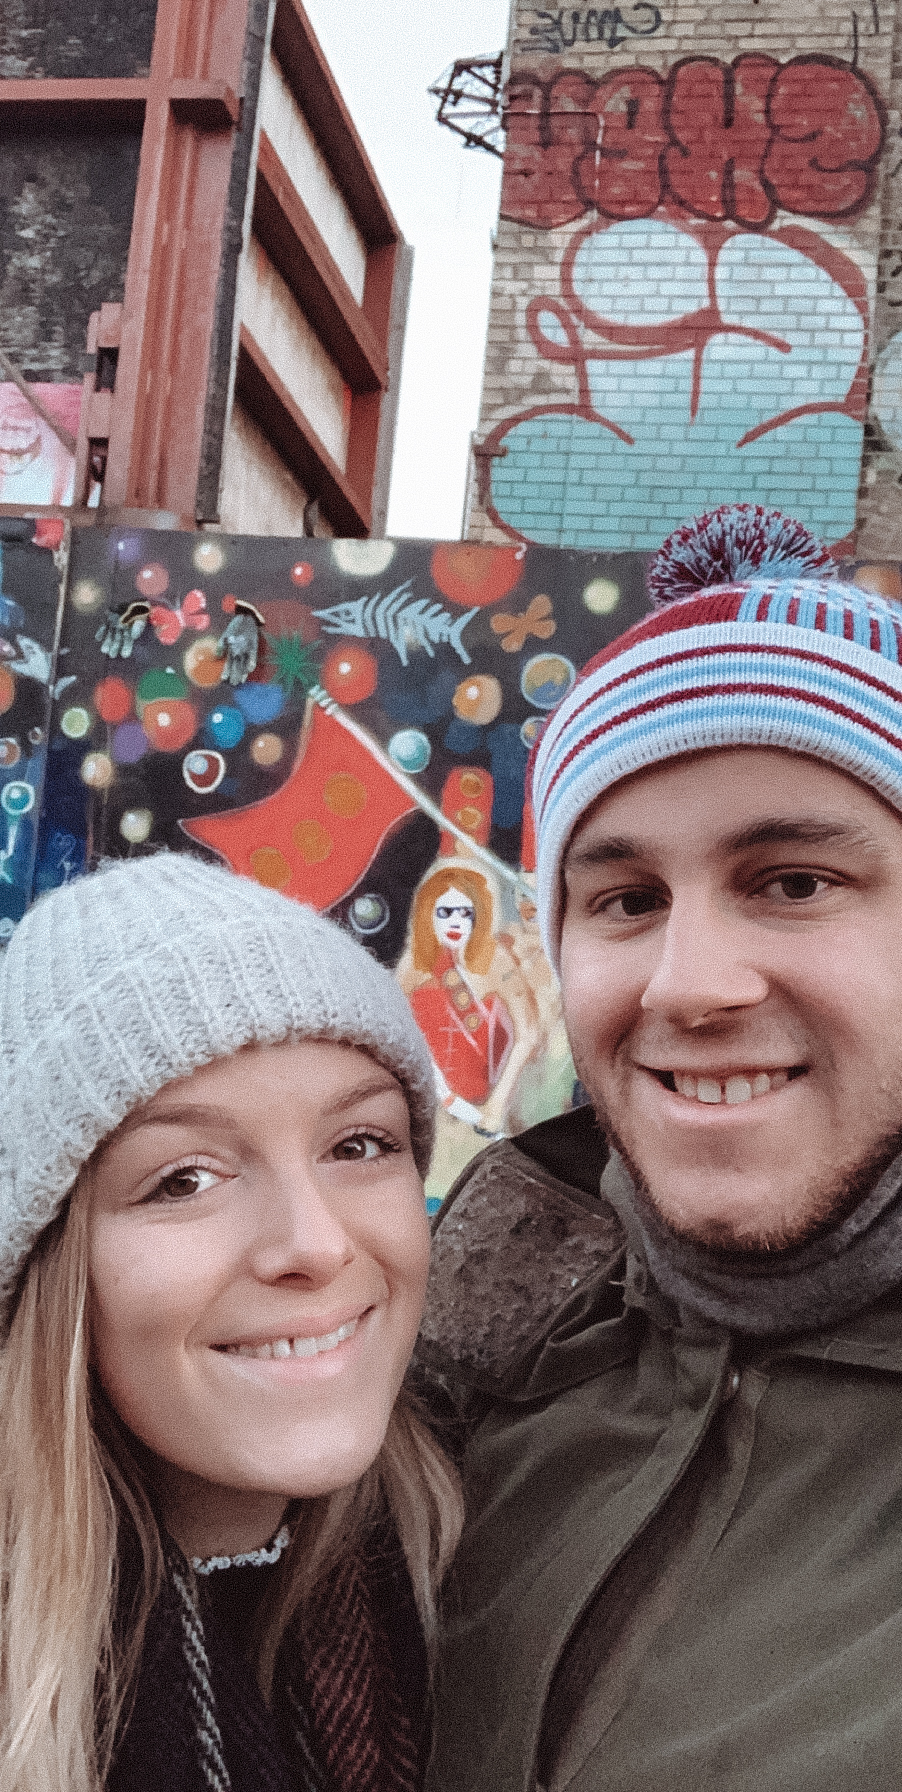 Two people having a selfie in front of graffiti.